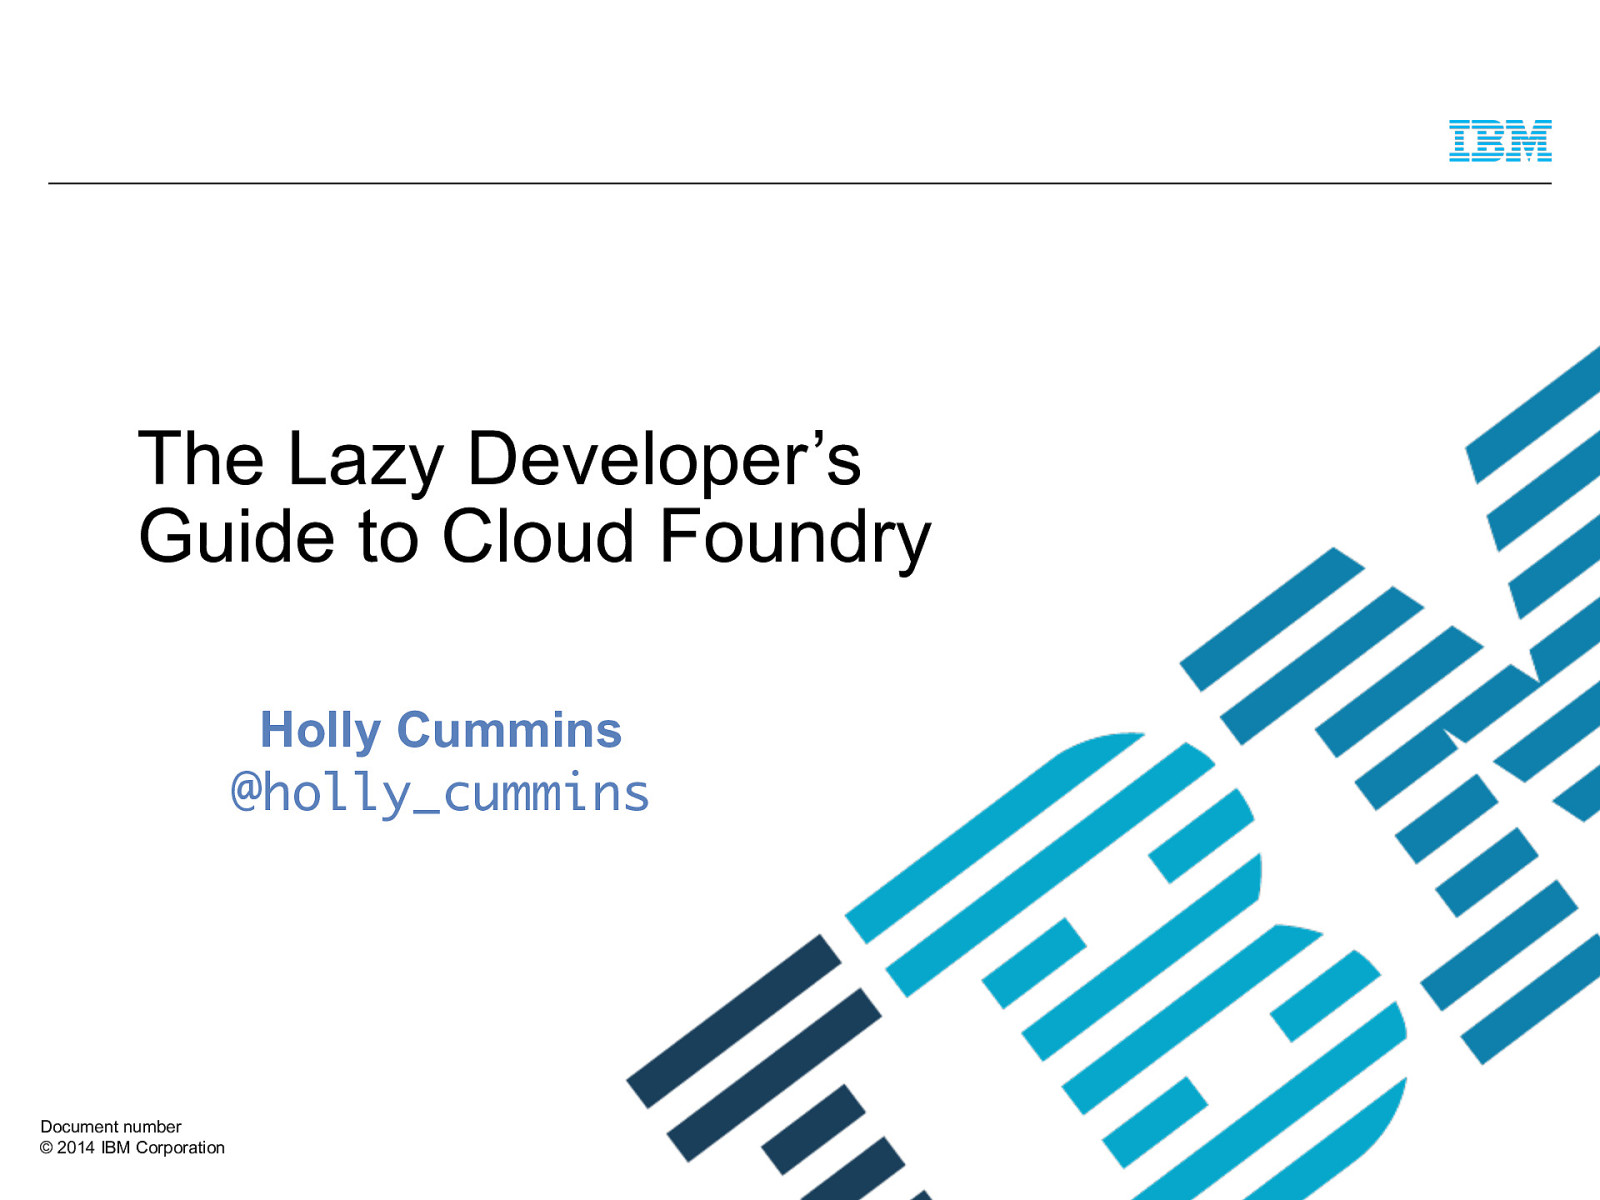 The Lazy Developer's Guide to Cloud Foundry